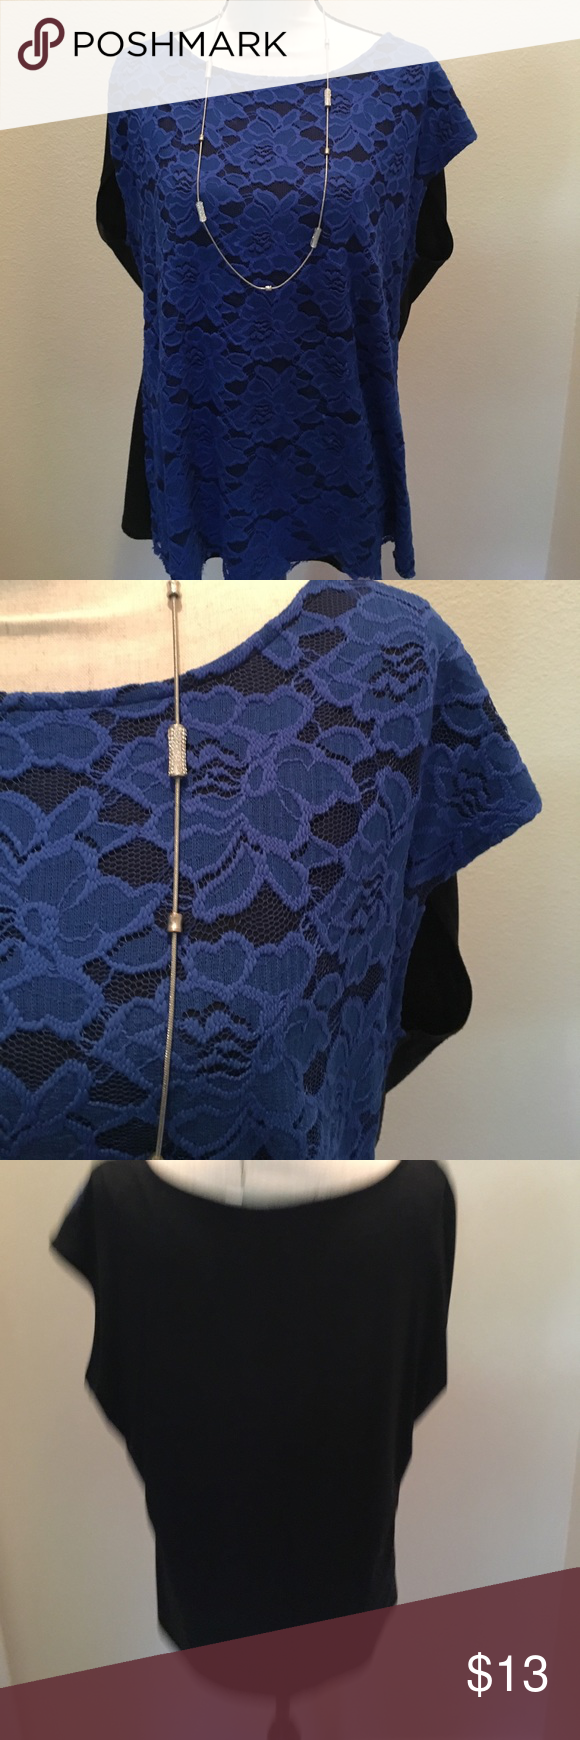 Royal blue lace top Beautiful. New York & Company royal blue lace top in front, all black in back. Perfect to dress up or wear casually. Size is extra large. Offers Welcome. Buy 2 or more items in closet and save 10% New York & Company Tops Blouses